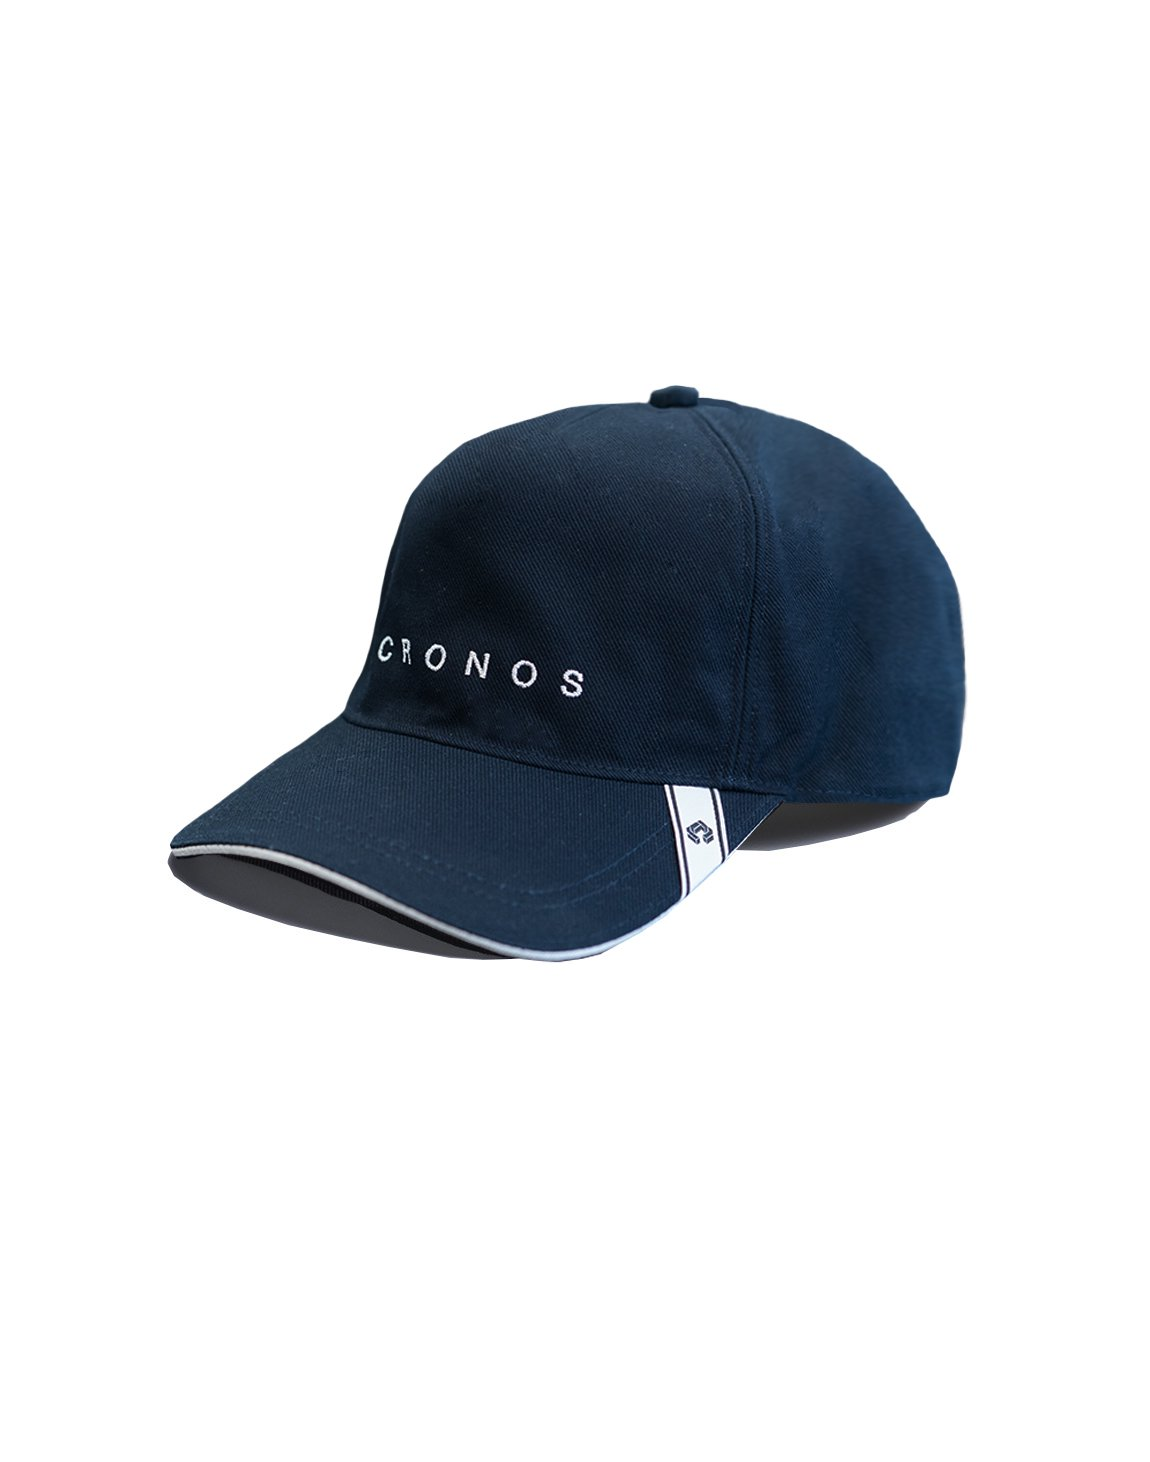 <img class='new_mark_img1' src='https://img.shop-pro.jp/img/new/icons1.gif' style='border:none;display:inline;margin:0px;padding:0px;width:auto;' />CRONOS FONT LOGO CAP【NAVY】